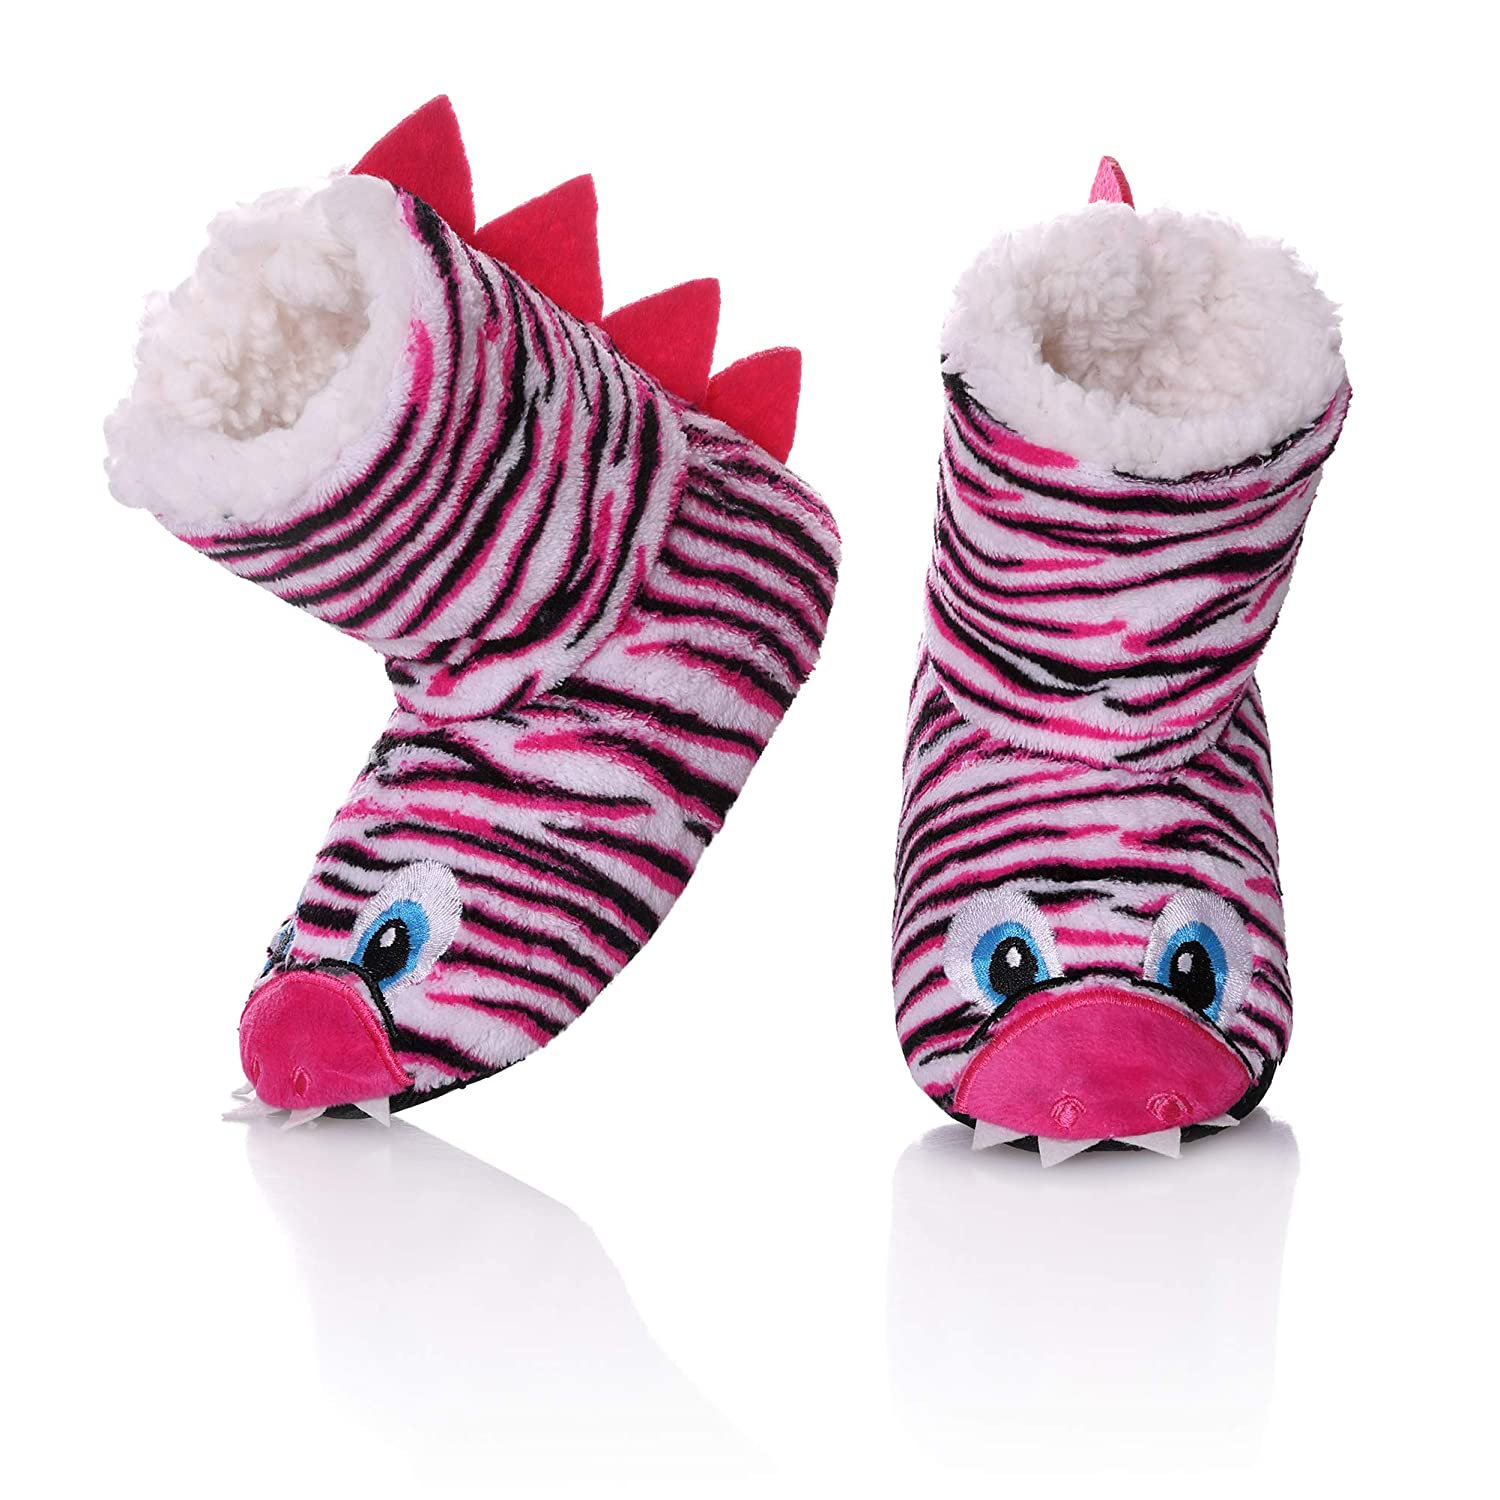 FANZERO Kids Girls Boys Floor Slippers Cute Animal Soft Warm Plush Lining Non-Slip House Shoes Winter Boot Socks 2-7 Year Old